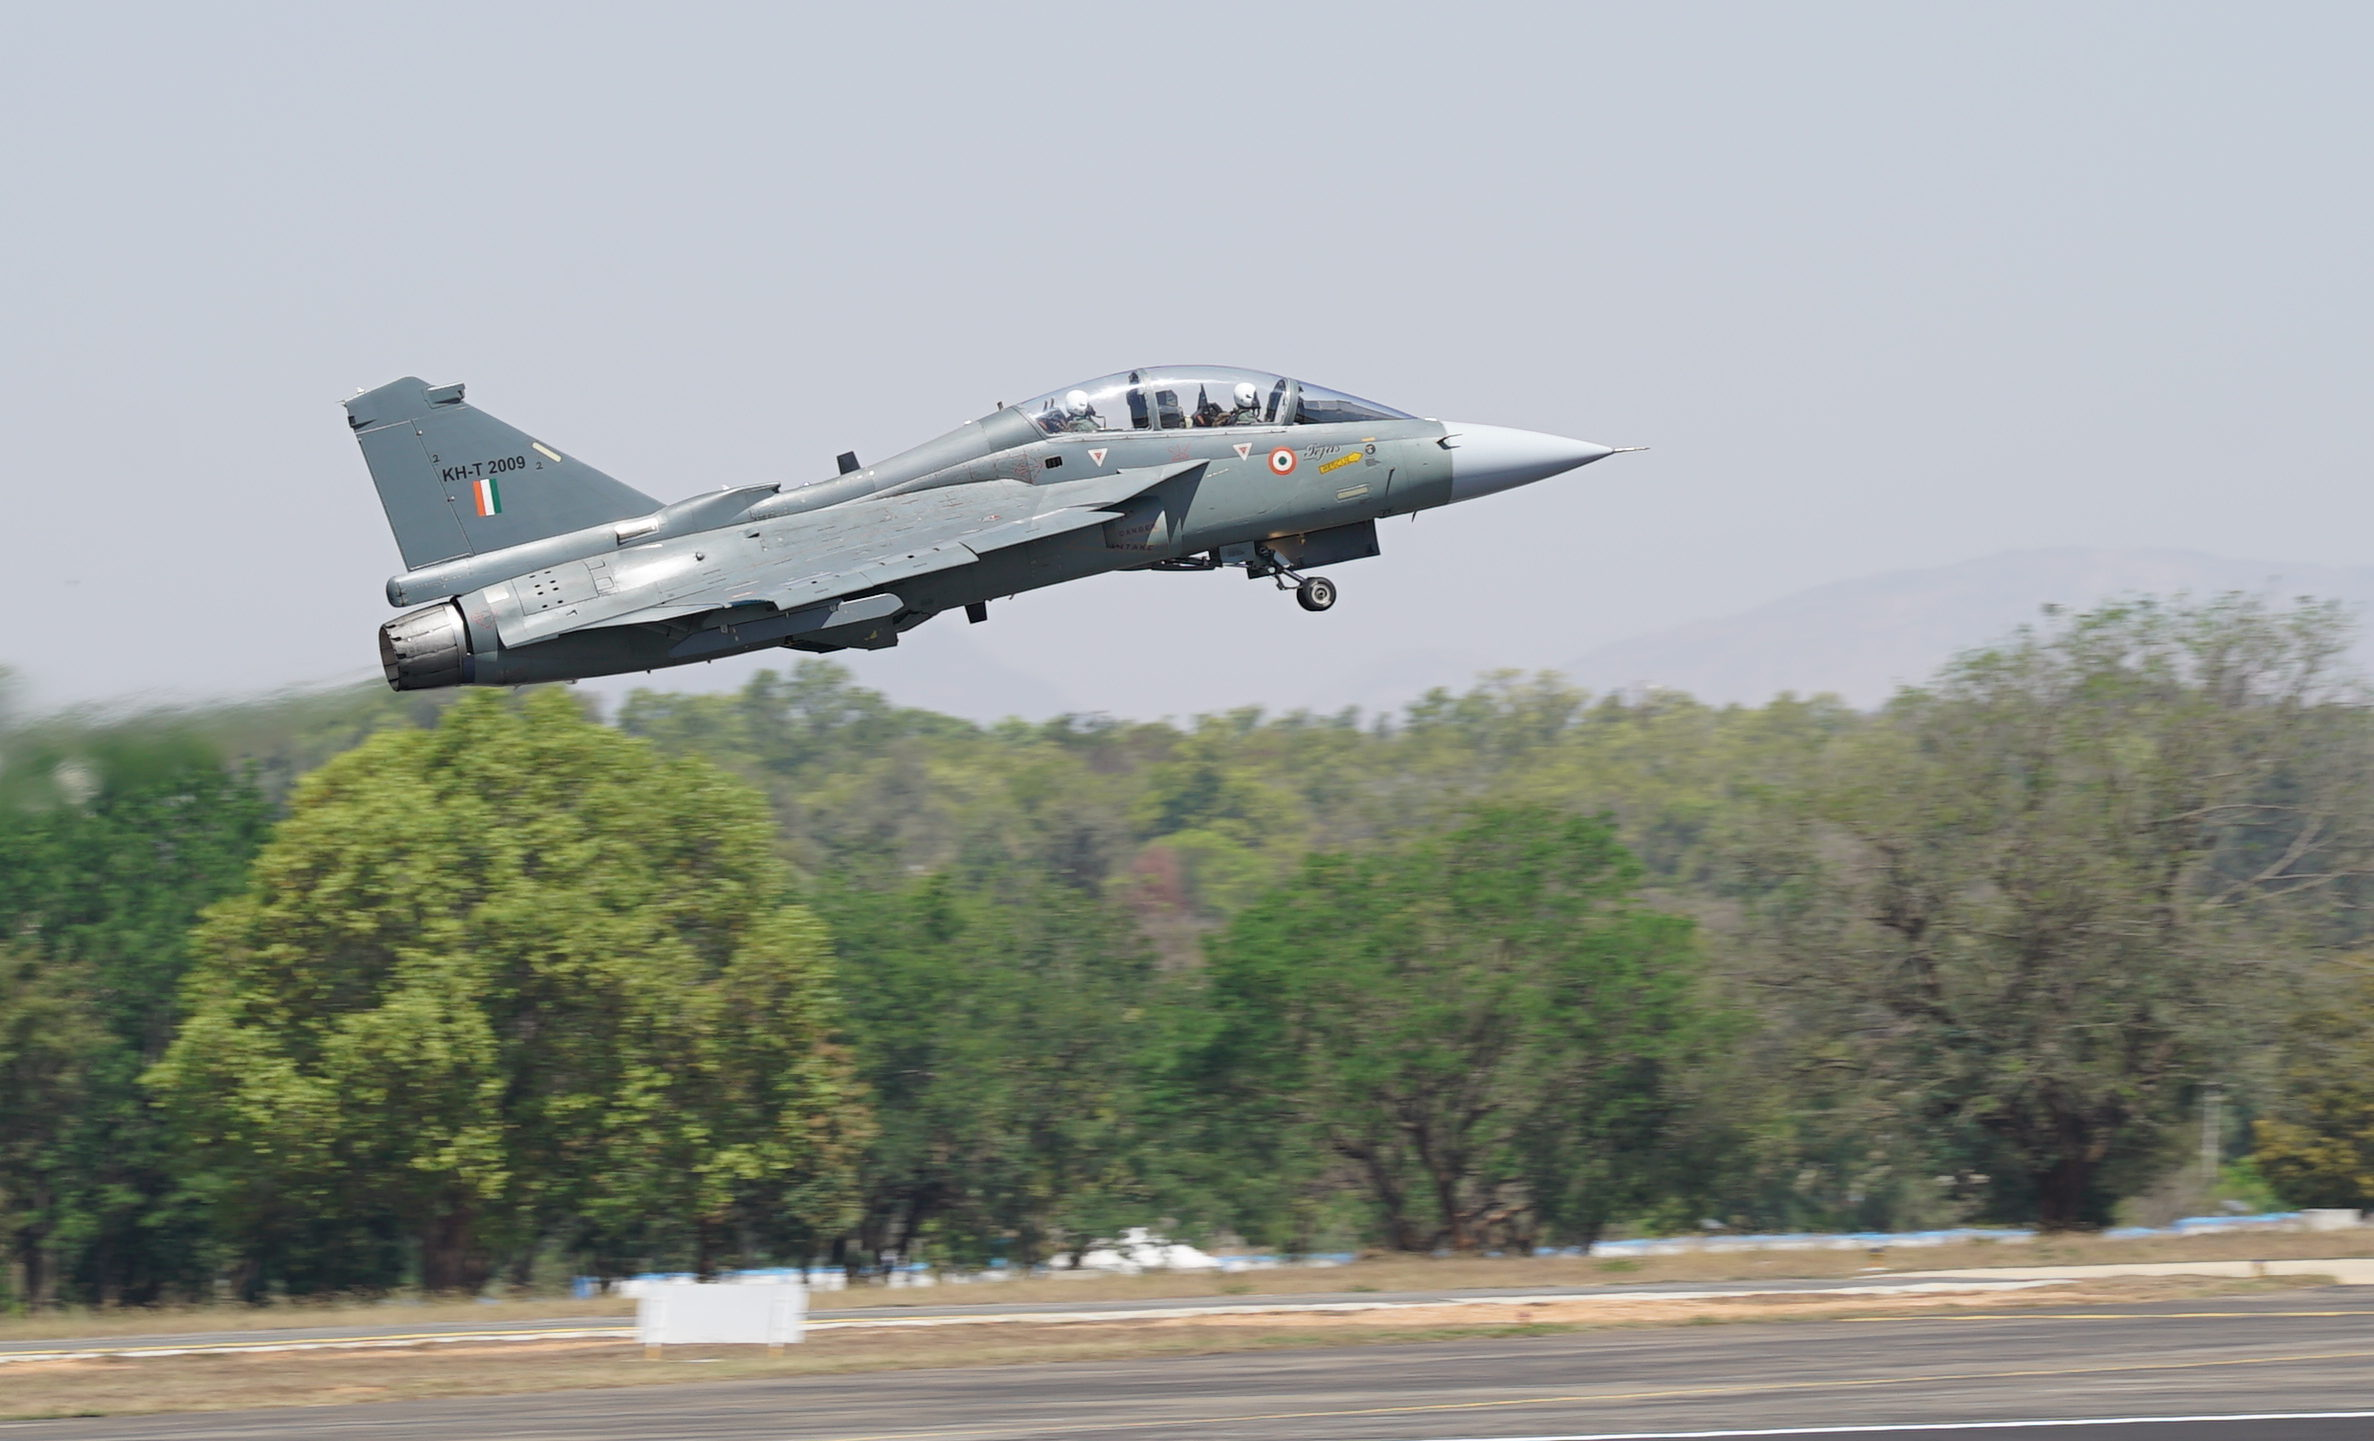 Aero India 2021 is On At the Same Time and Place